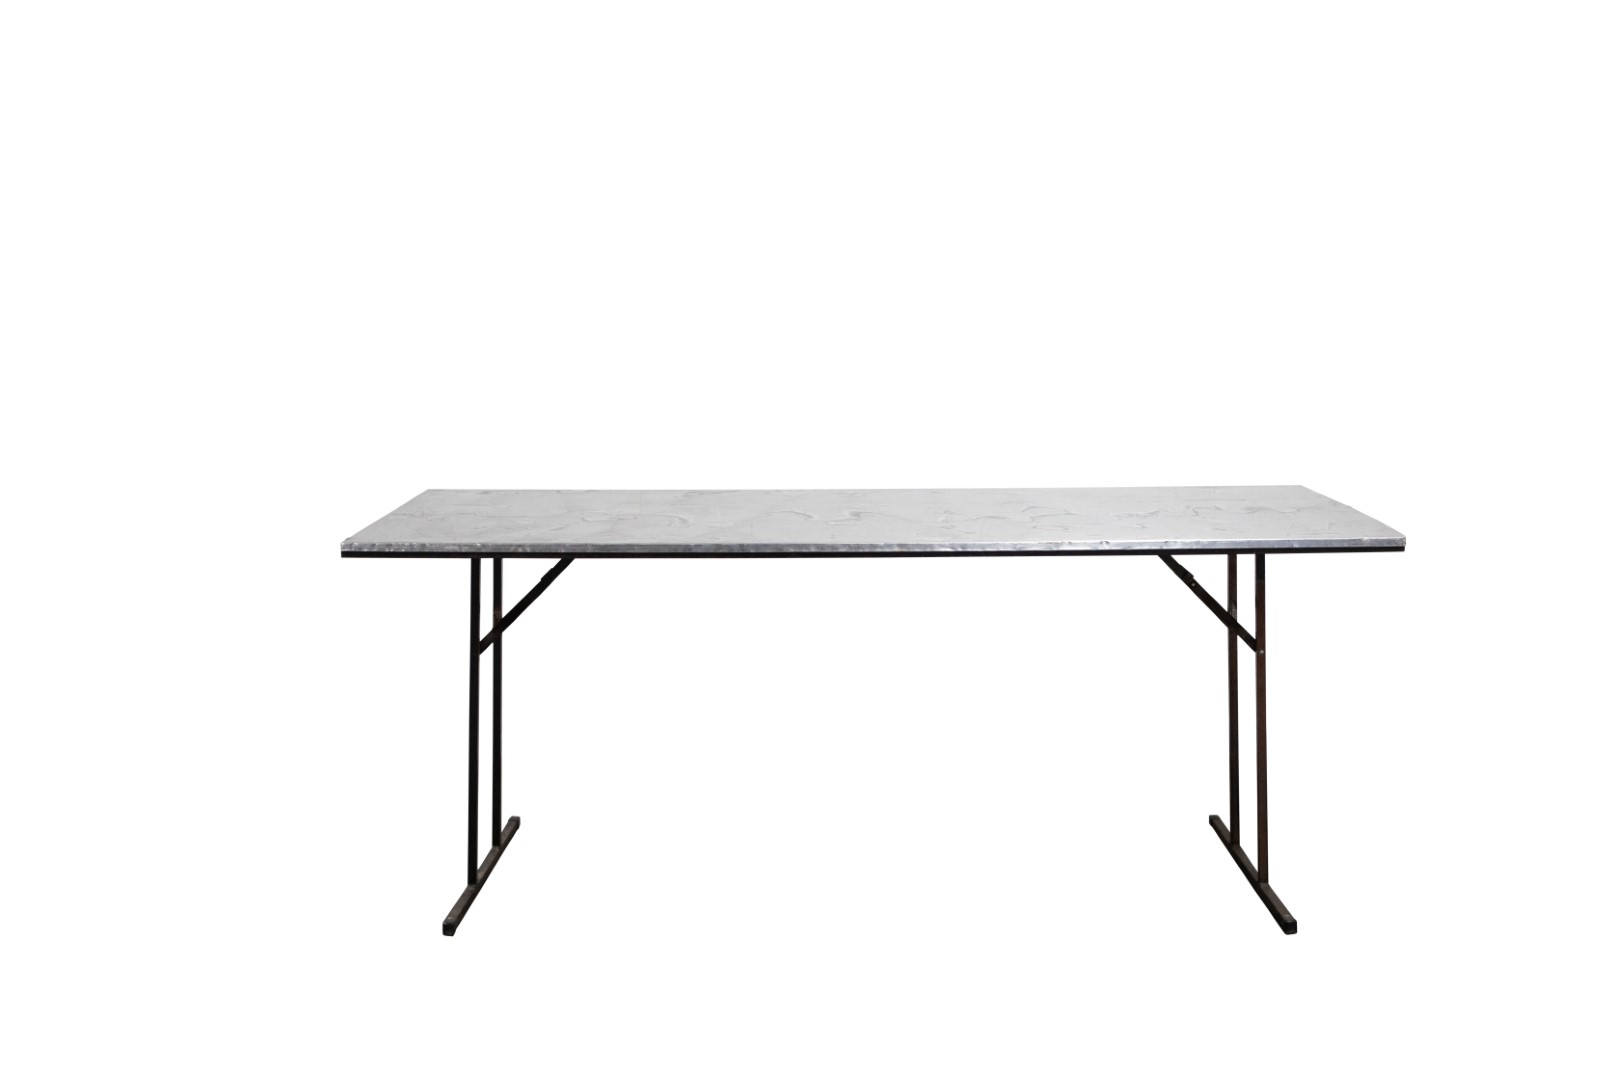 Catering Trestle Table – Bench Height, 2.4m x 0.8m